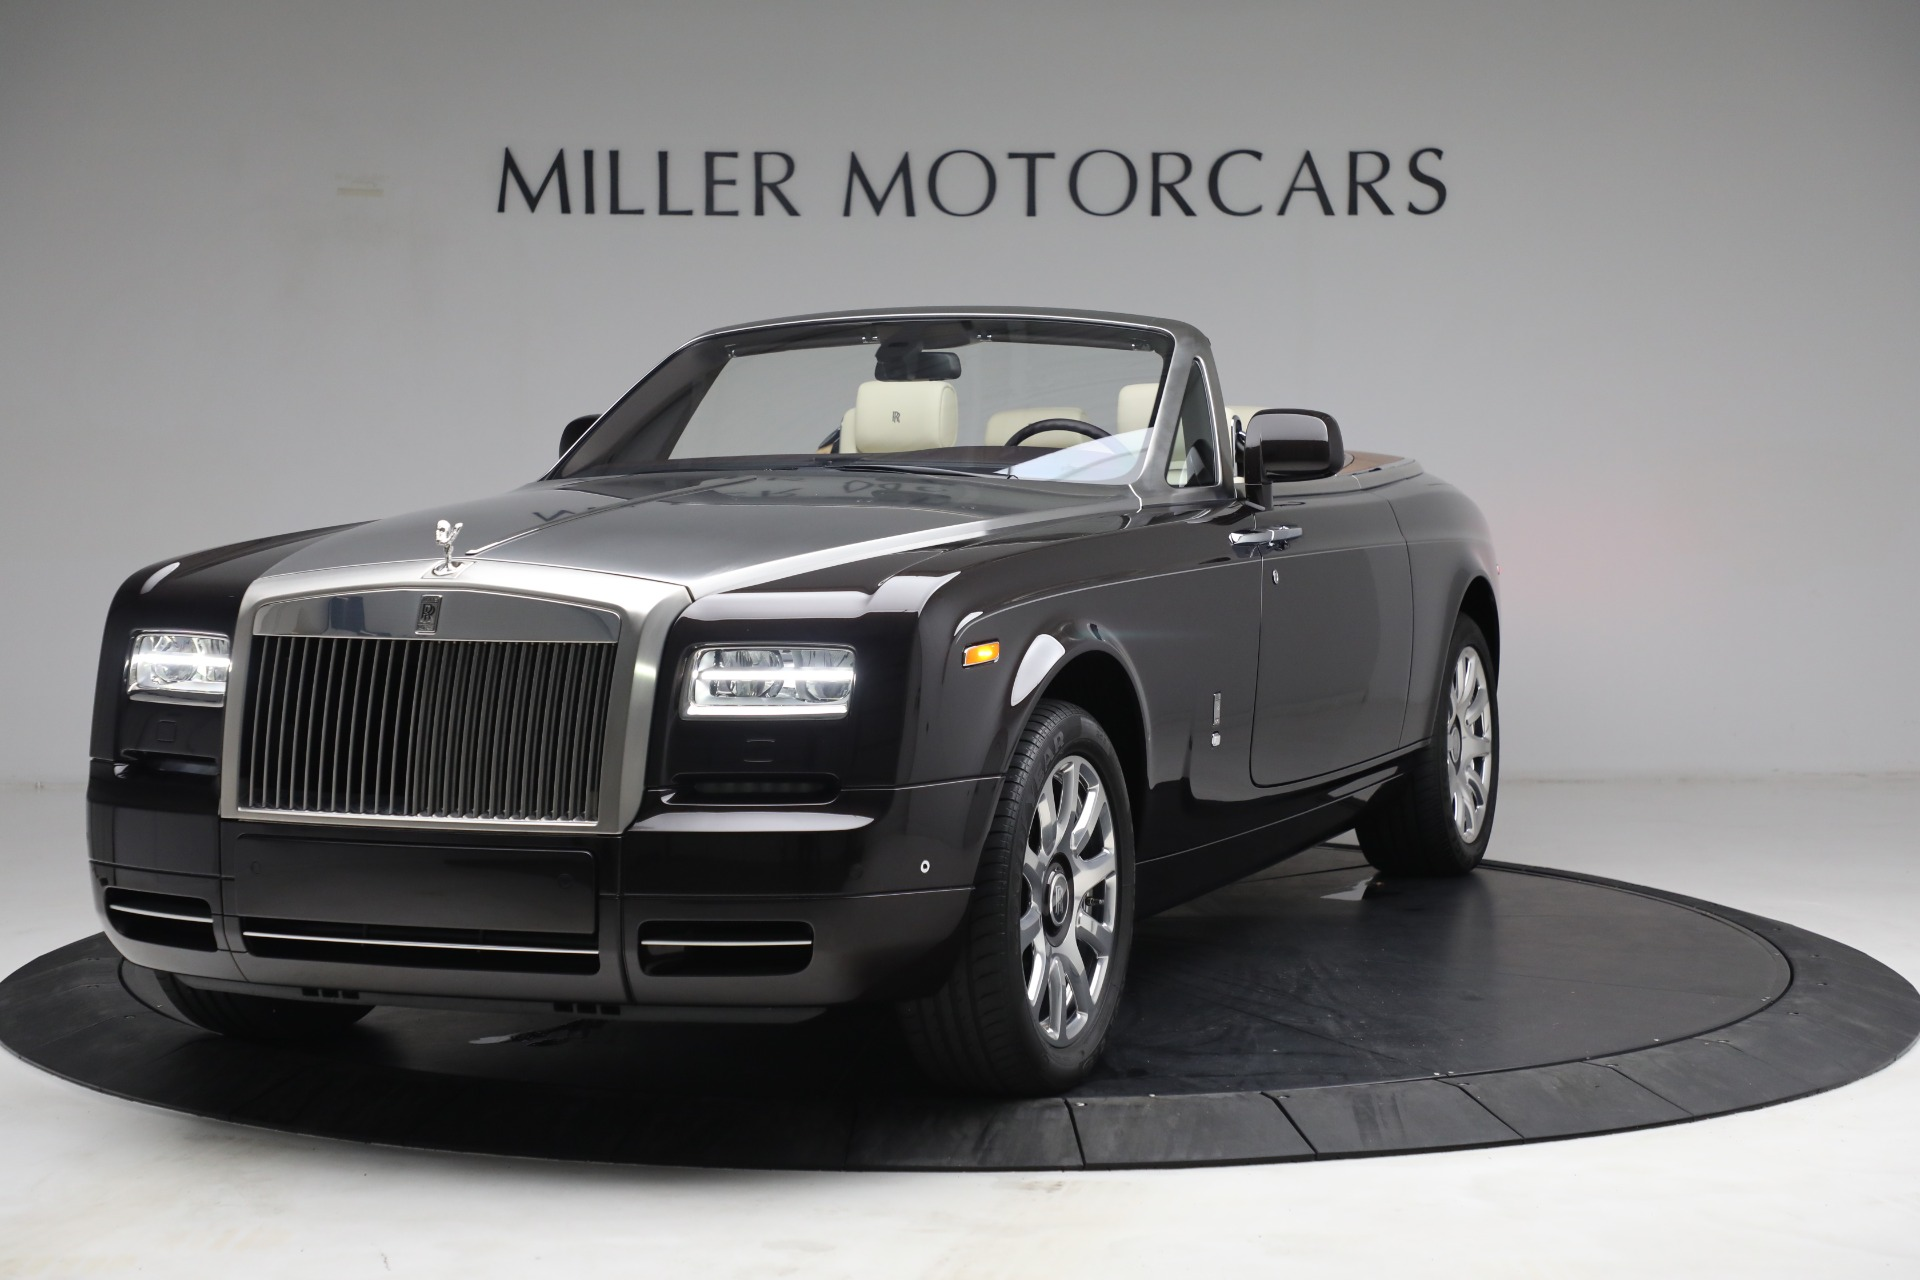 Used 2015 Rolls-Royce Phantom Drophead Coupe for sale Call for price at Pagani of Greenwich in Greenwich CT 06830 1